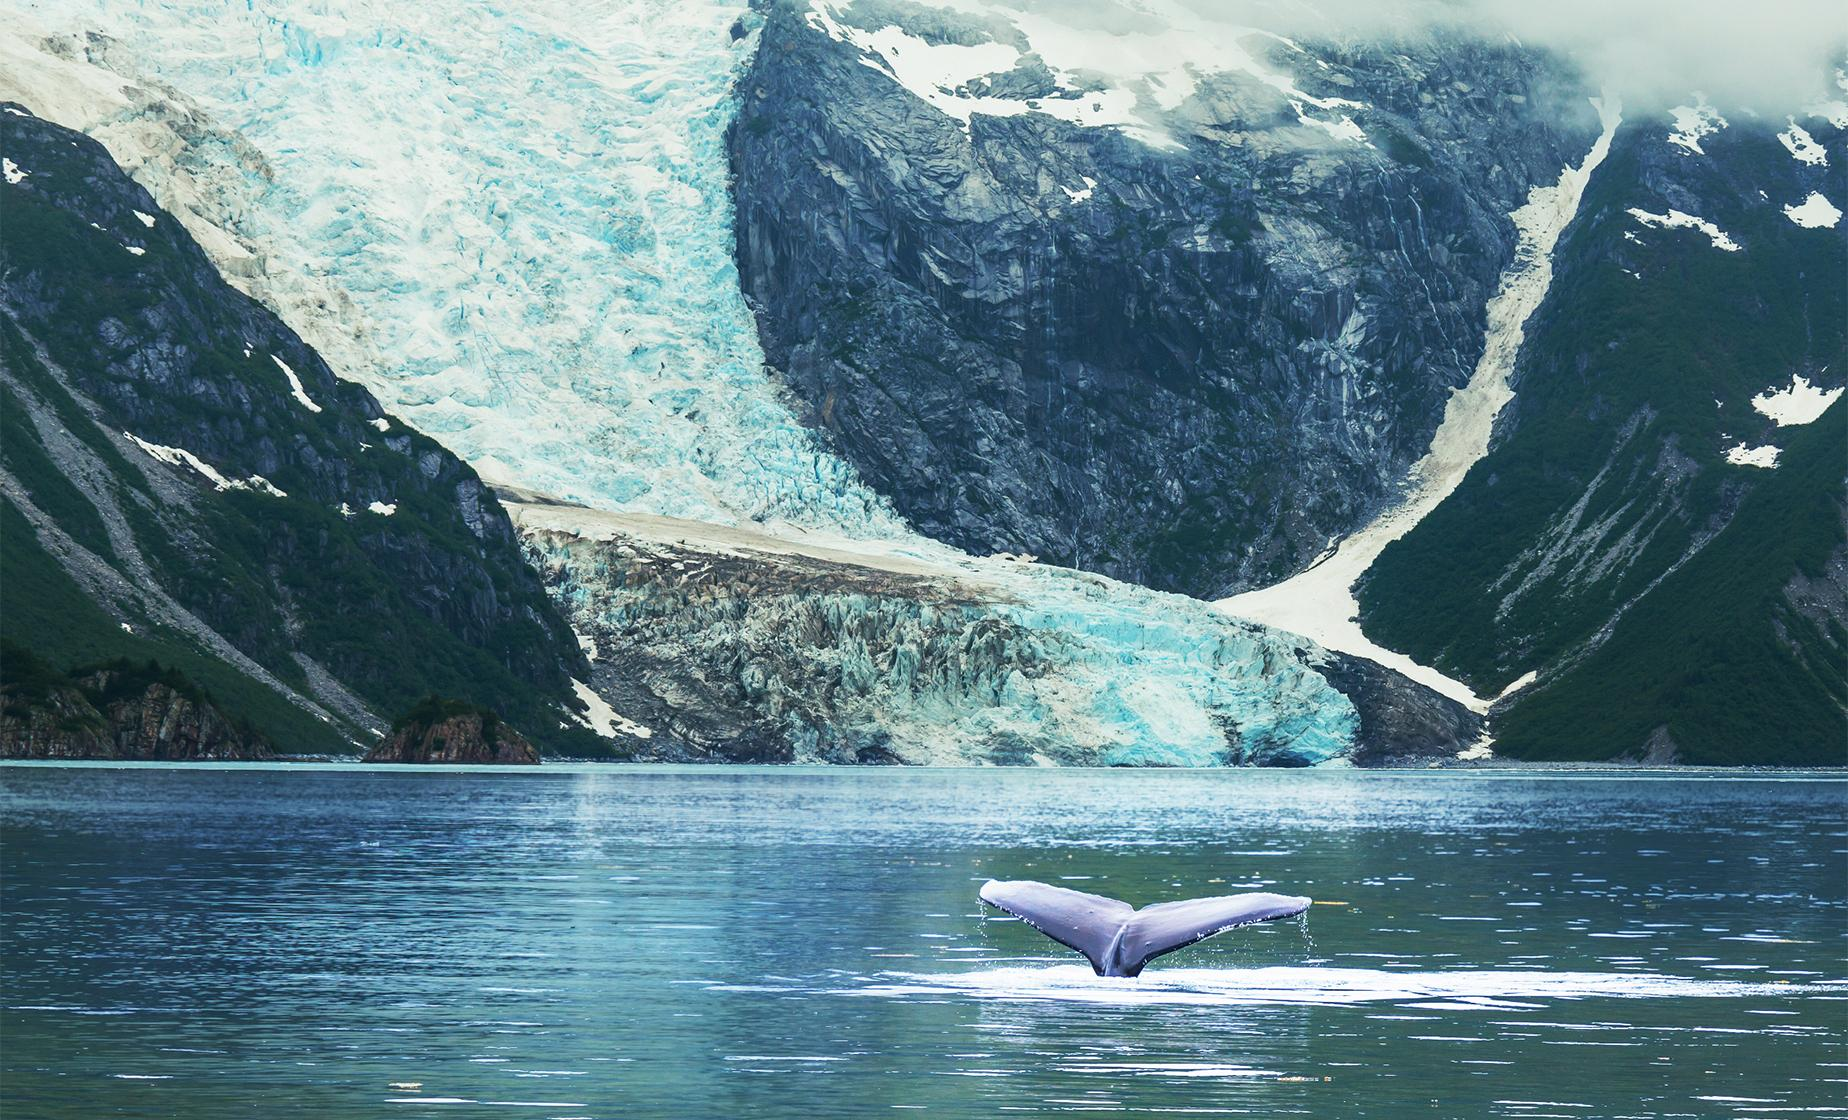 Whales and Mendenhall Glacier